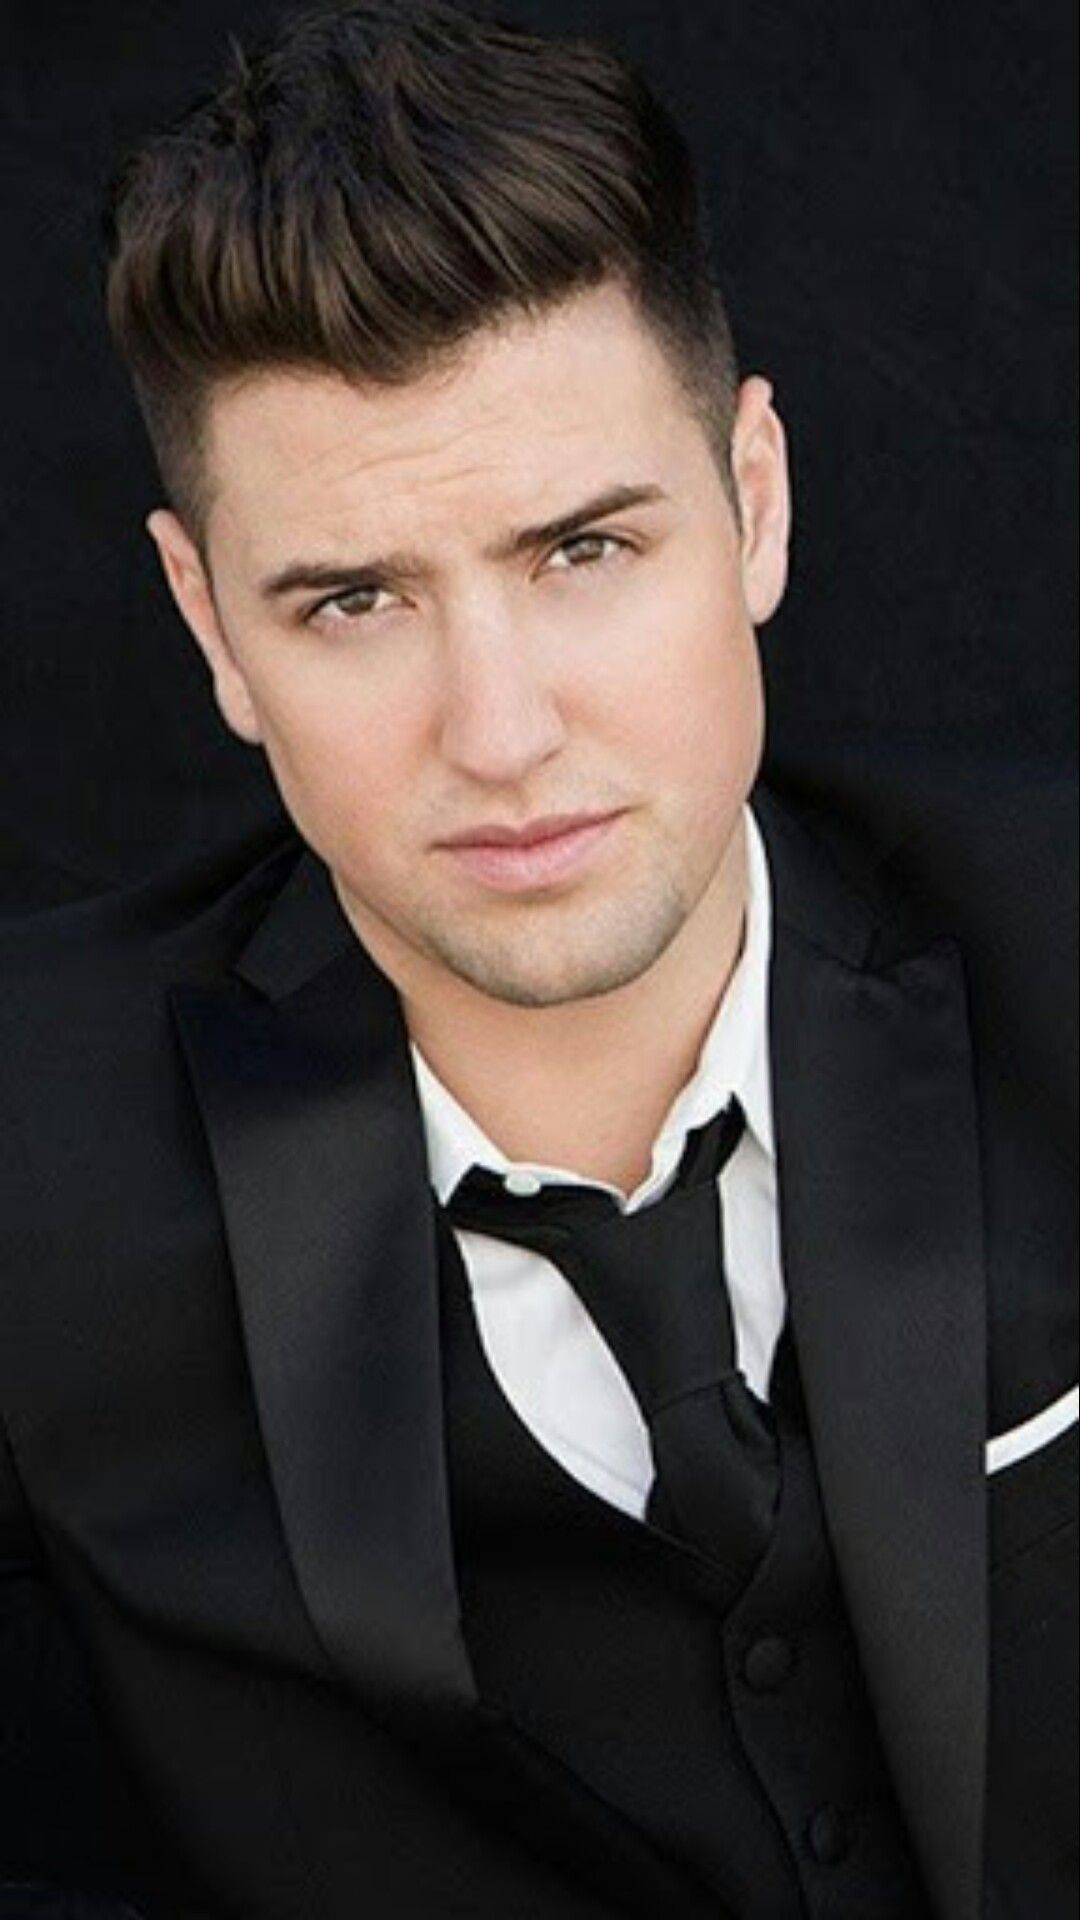 Logan Henderson HD Wallpapers | 7wallpapers.net